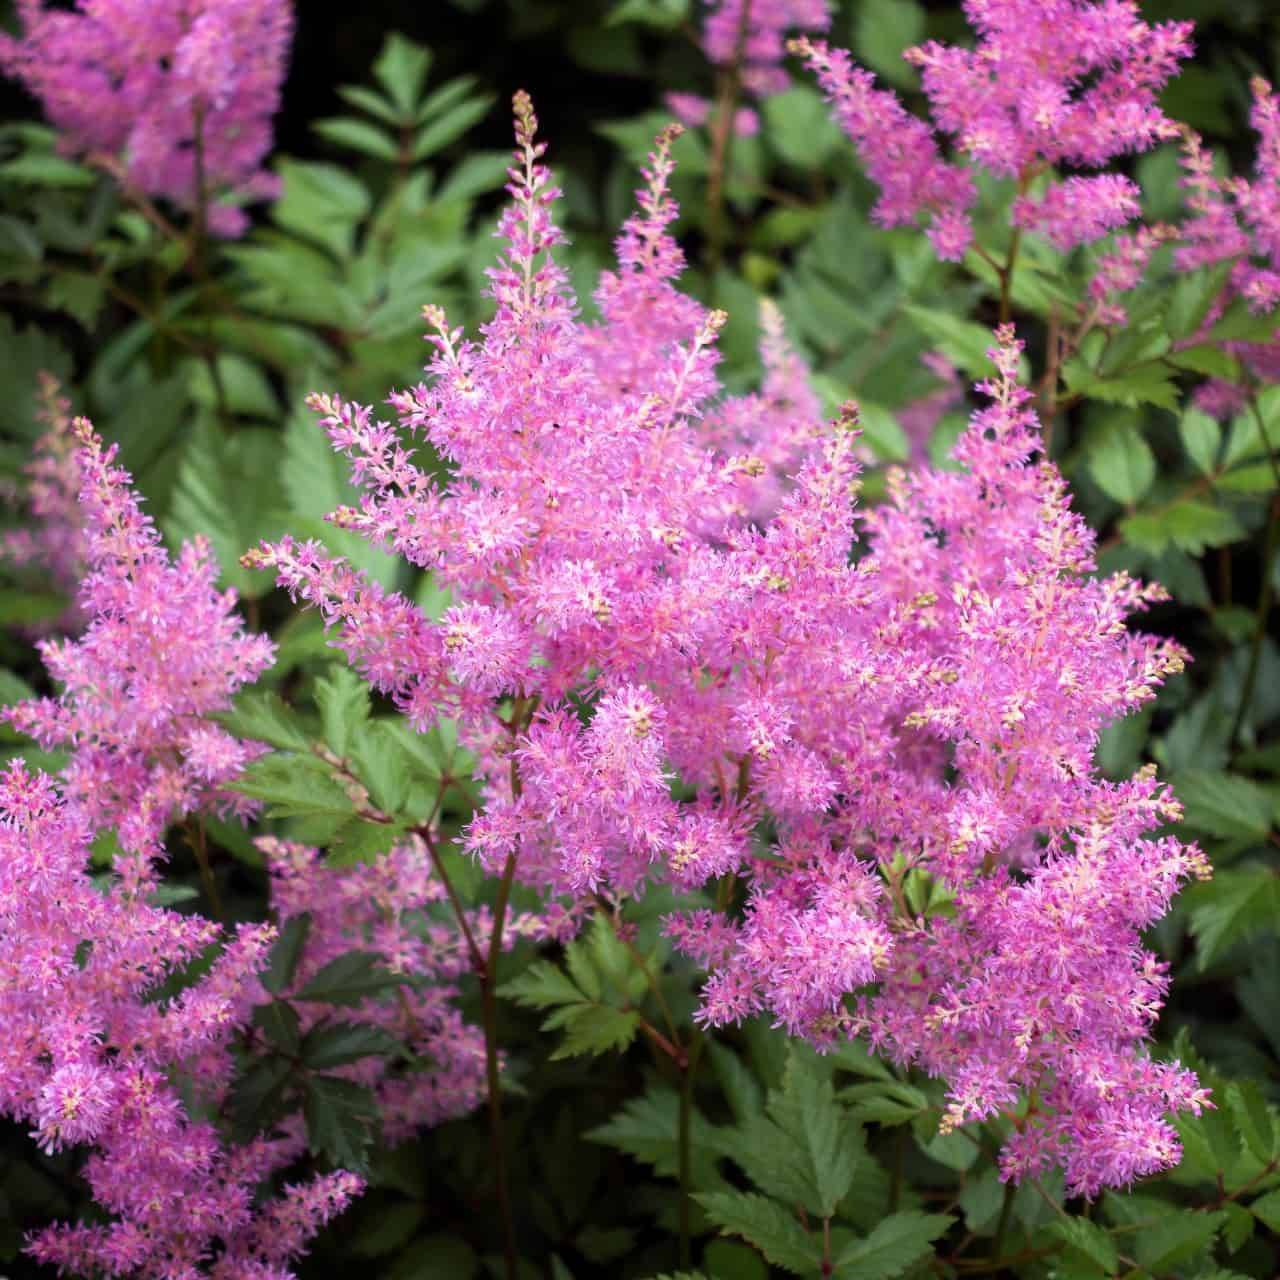 Astilbe not only has attractive flowers but leaves, too